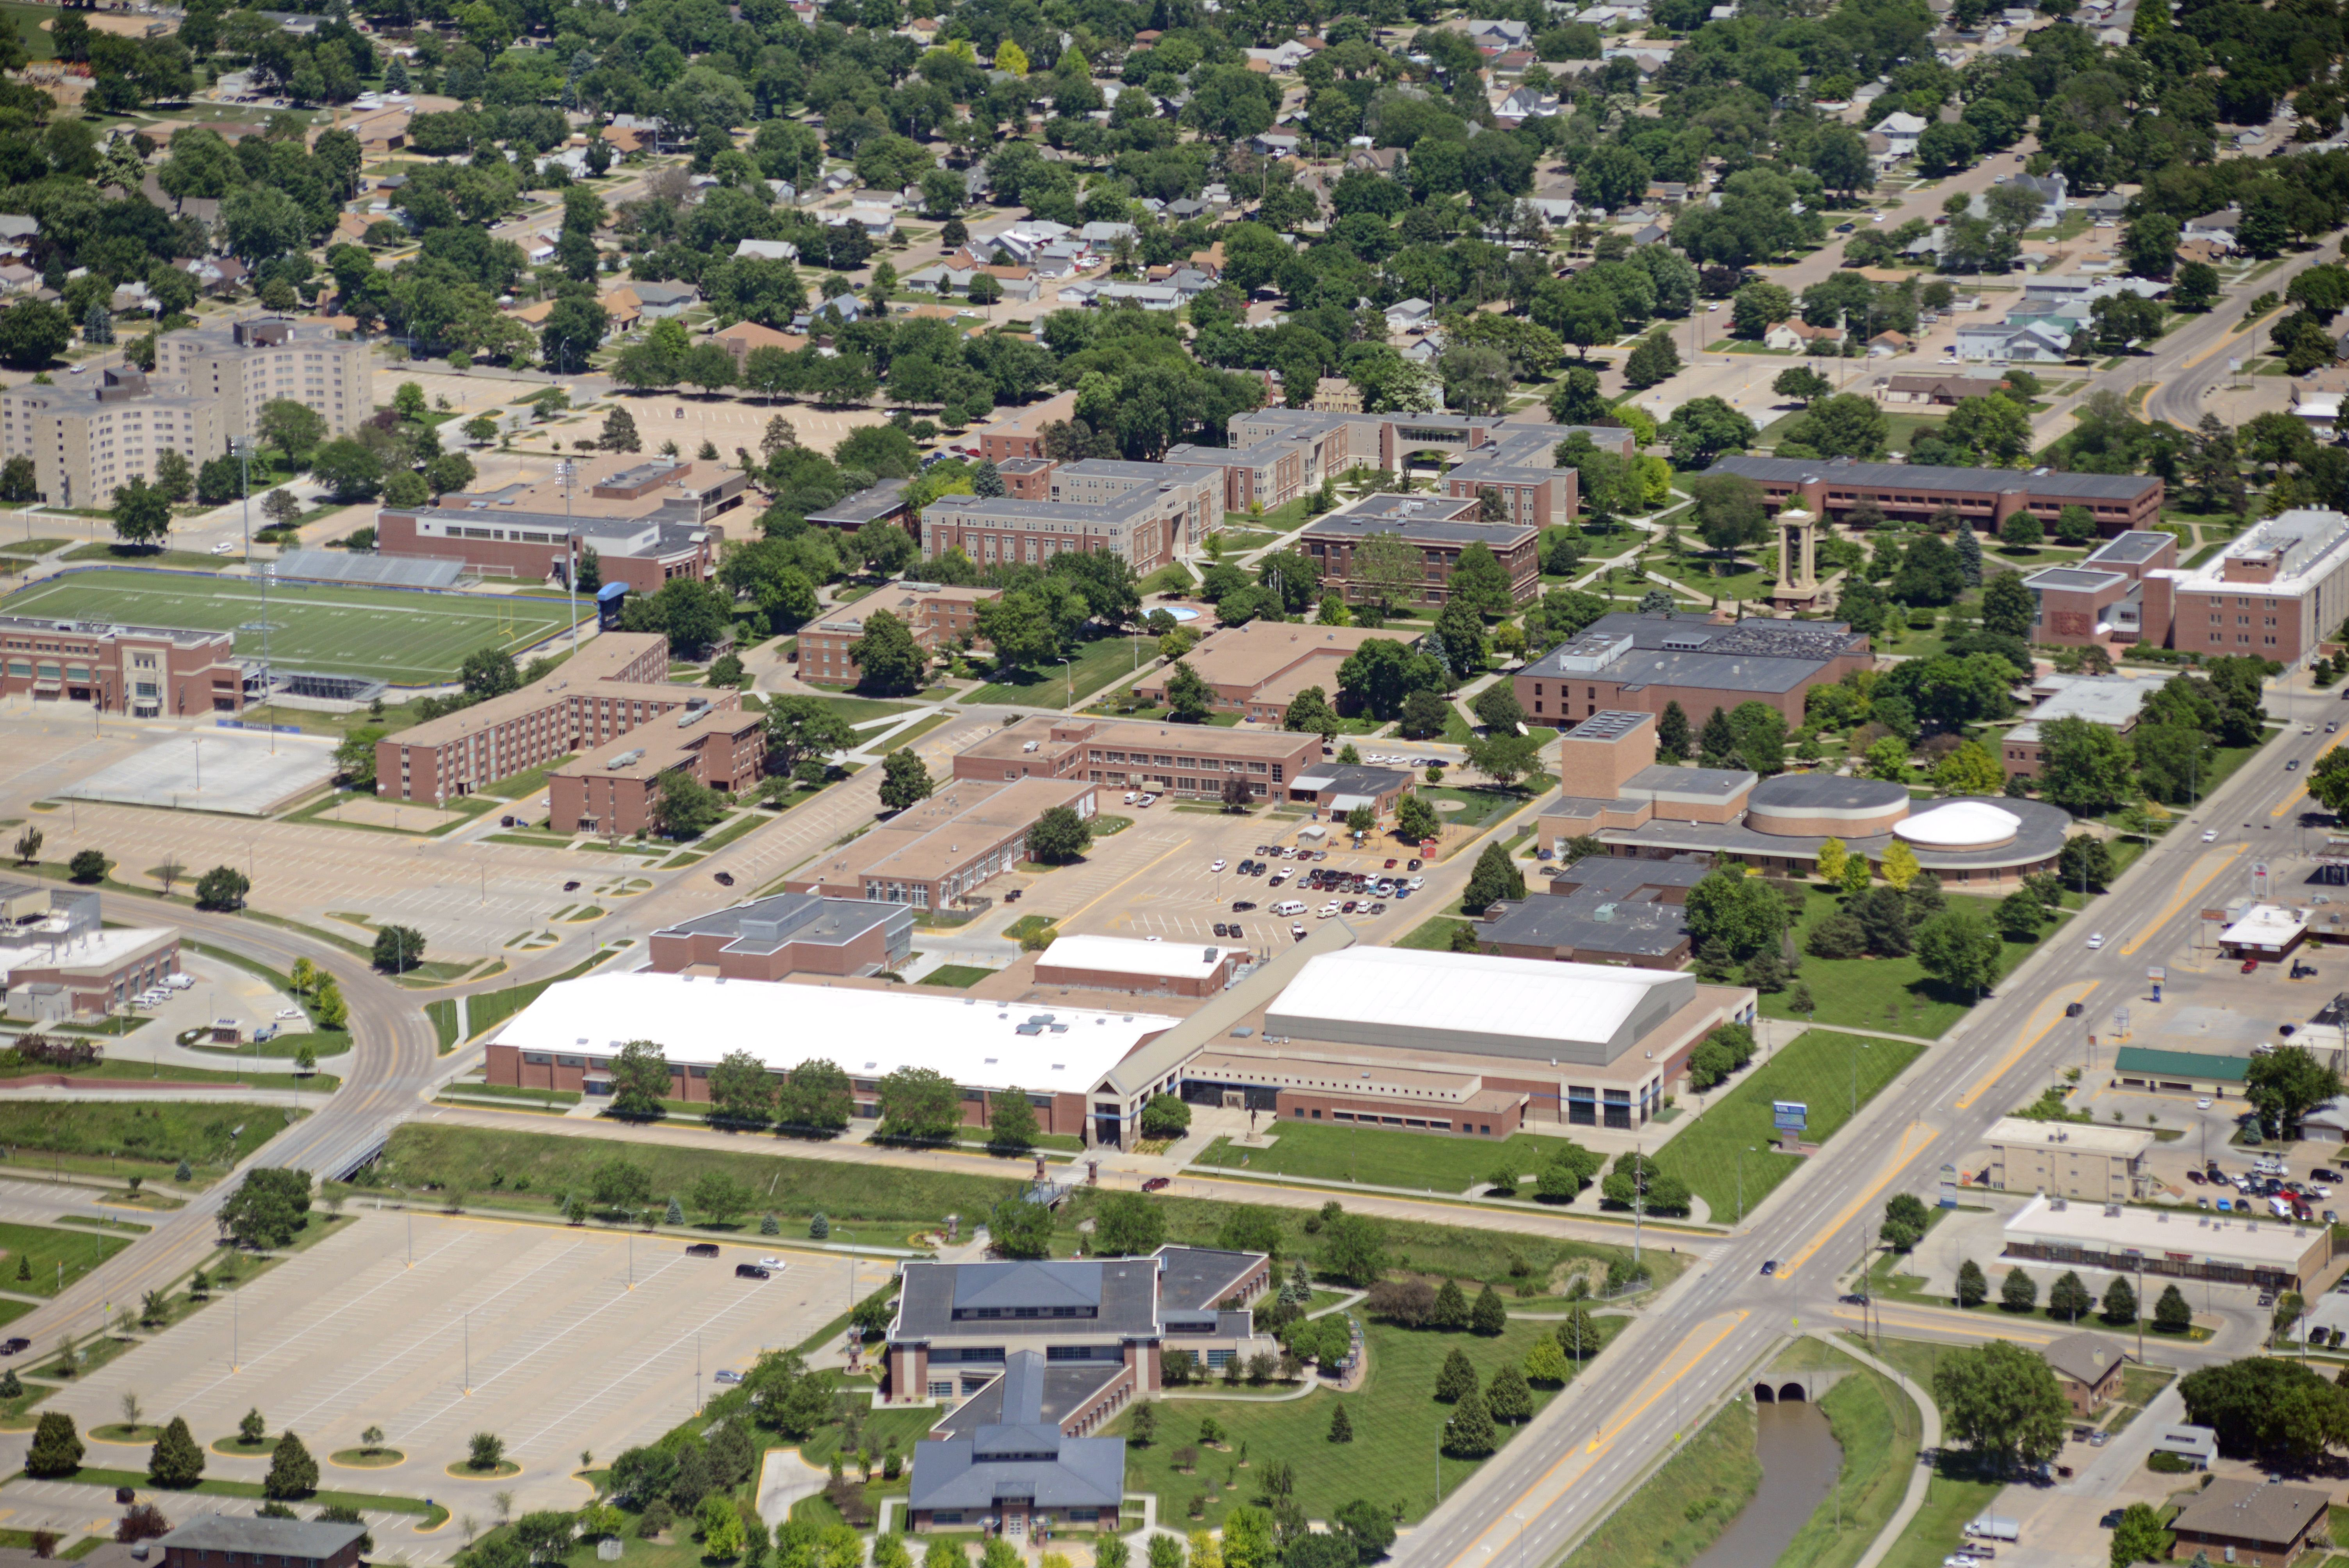 University of Nebraska at Kearney campus by air (With